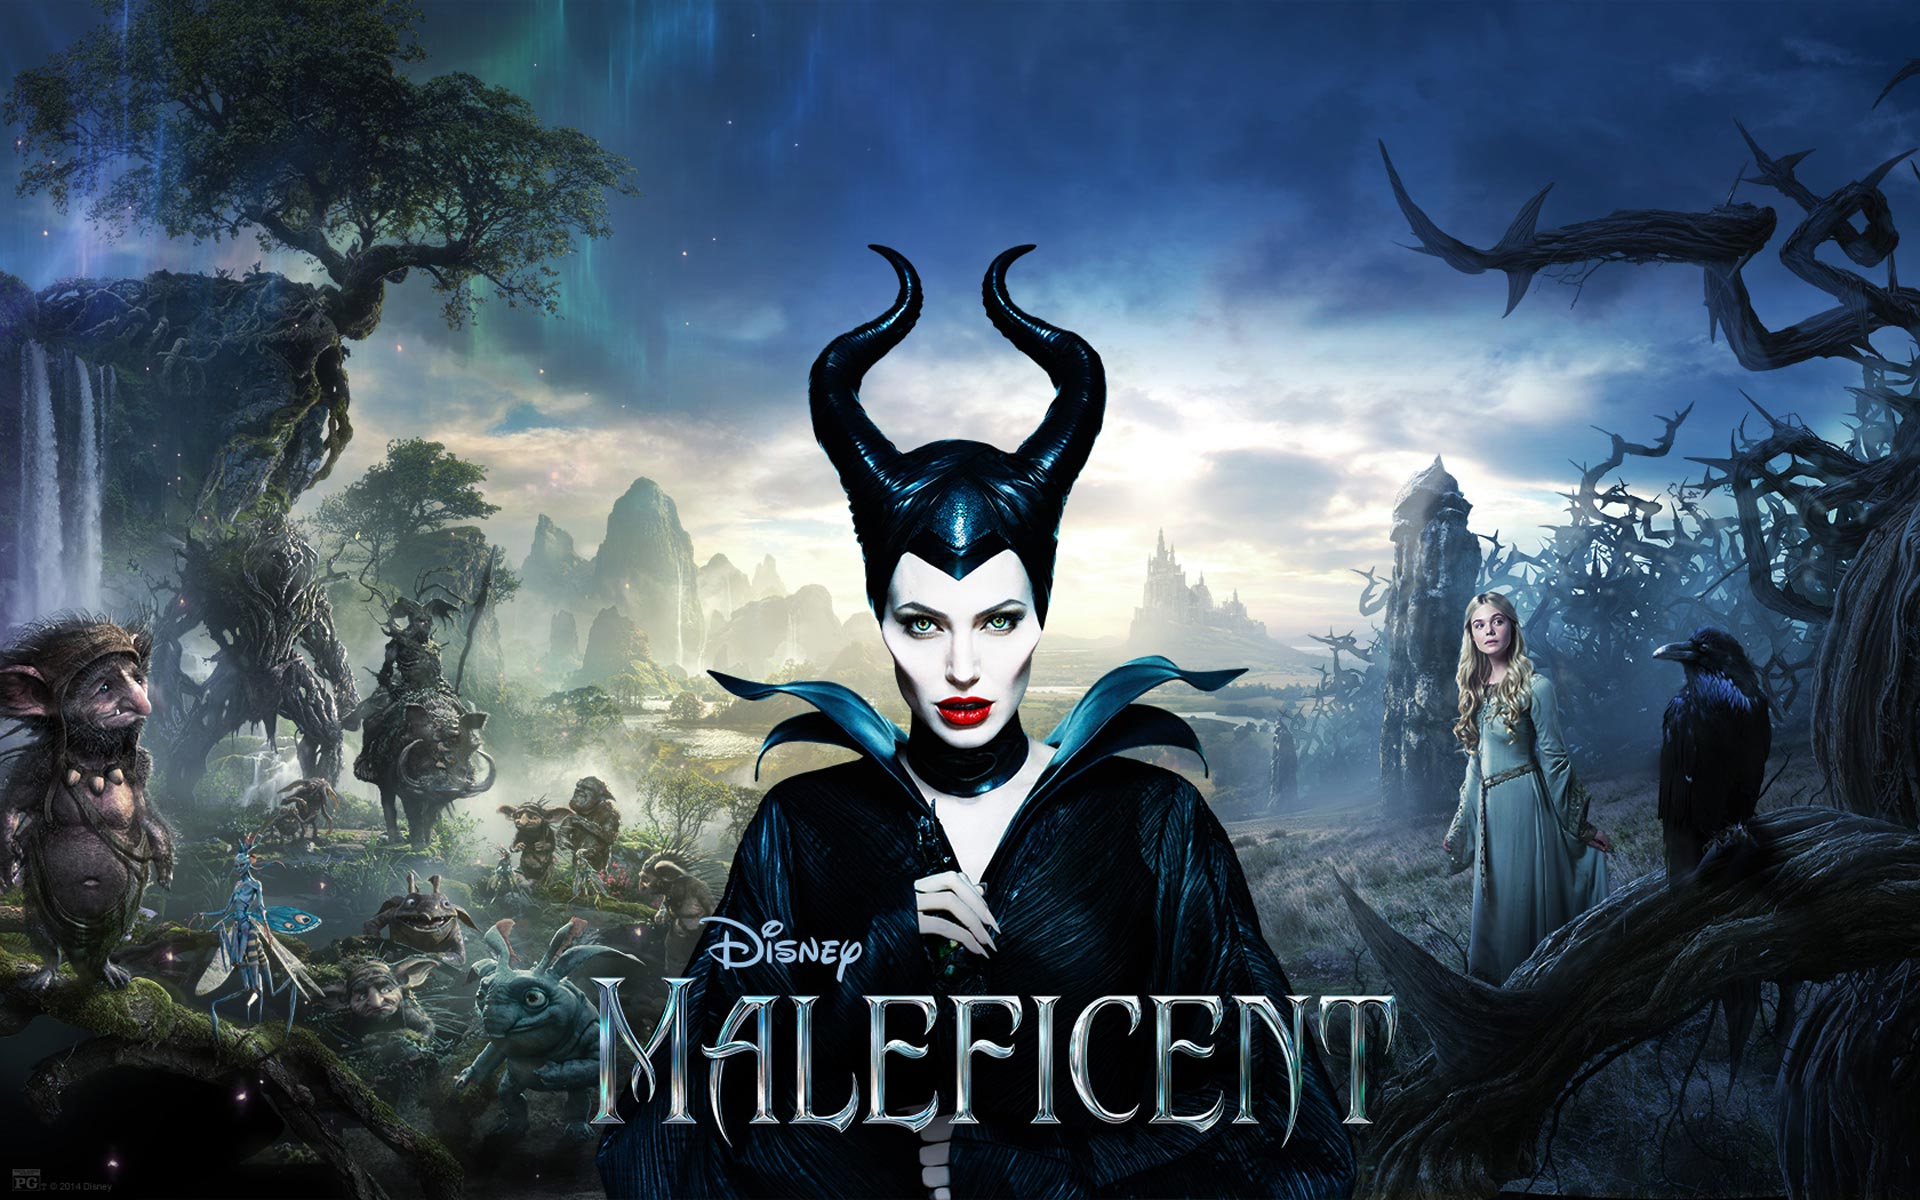 Free Maleficent wallpaper 1920x1200 28416